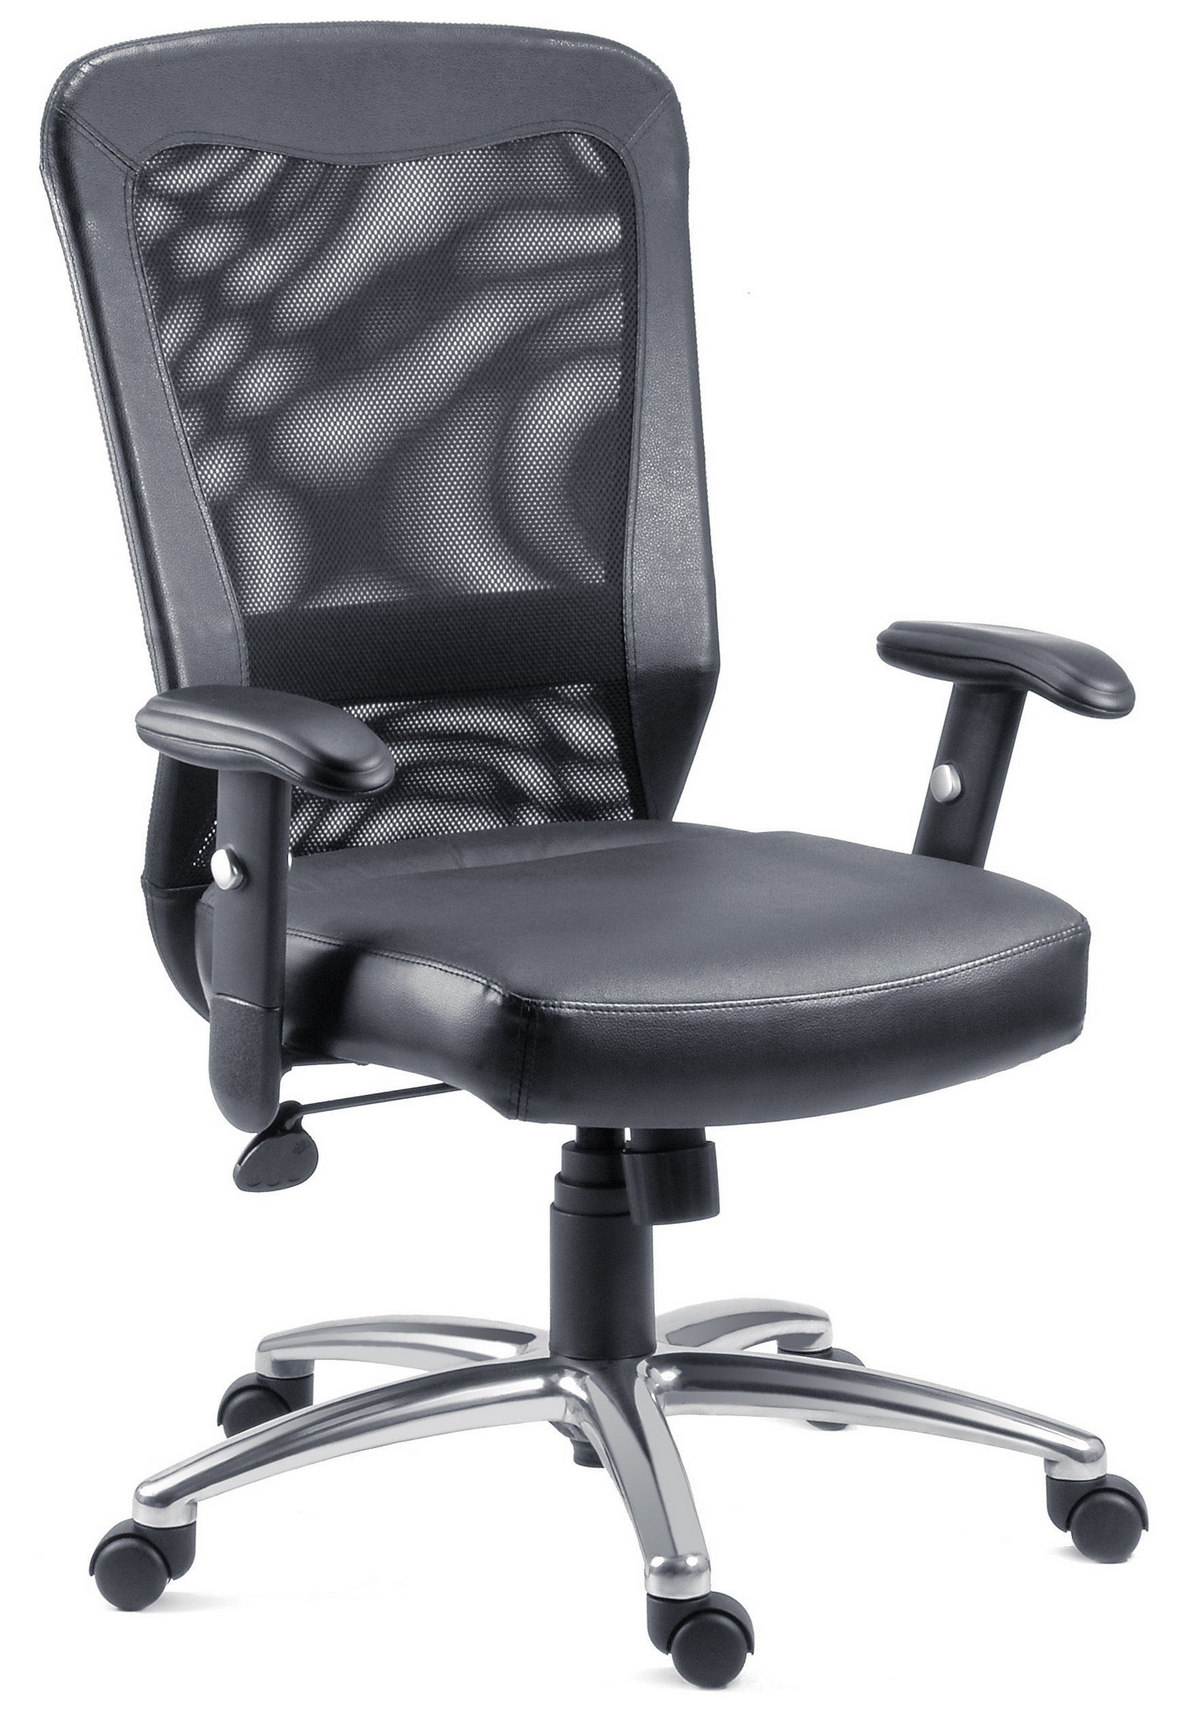 Ergonomic Mesh Chair Breeze Ergonomic Office Chair Posture Chairs Uk